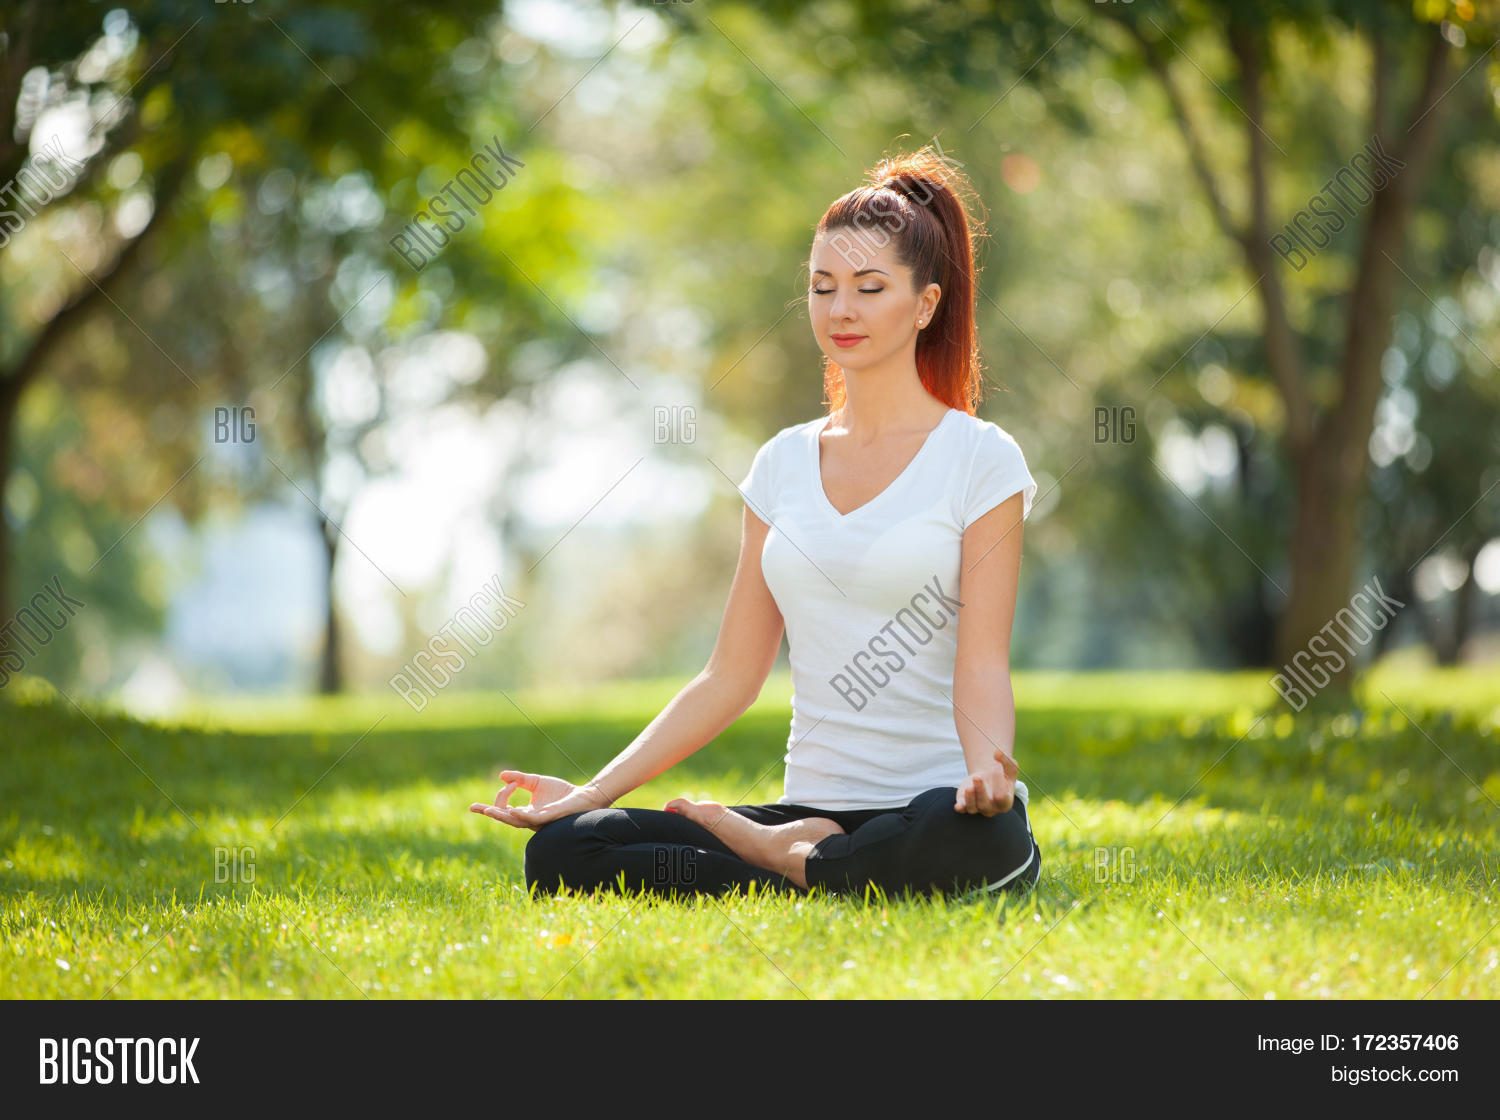 Yoga Outdoor Happy Woman Doing Yoga Exercises Meditate In The Park Yoga Meditation In Nature Con 172357406 Image Stock Photo